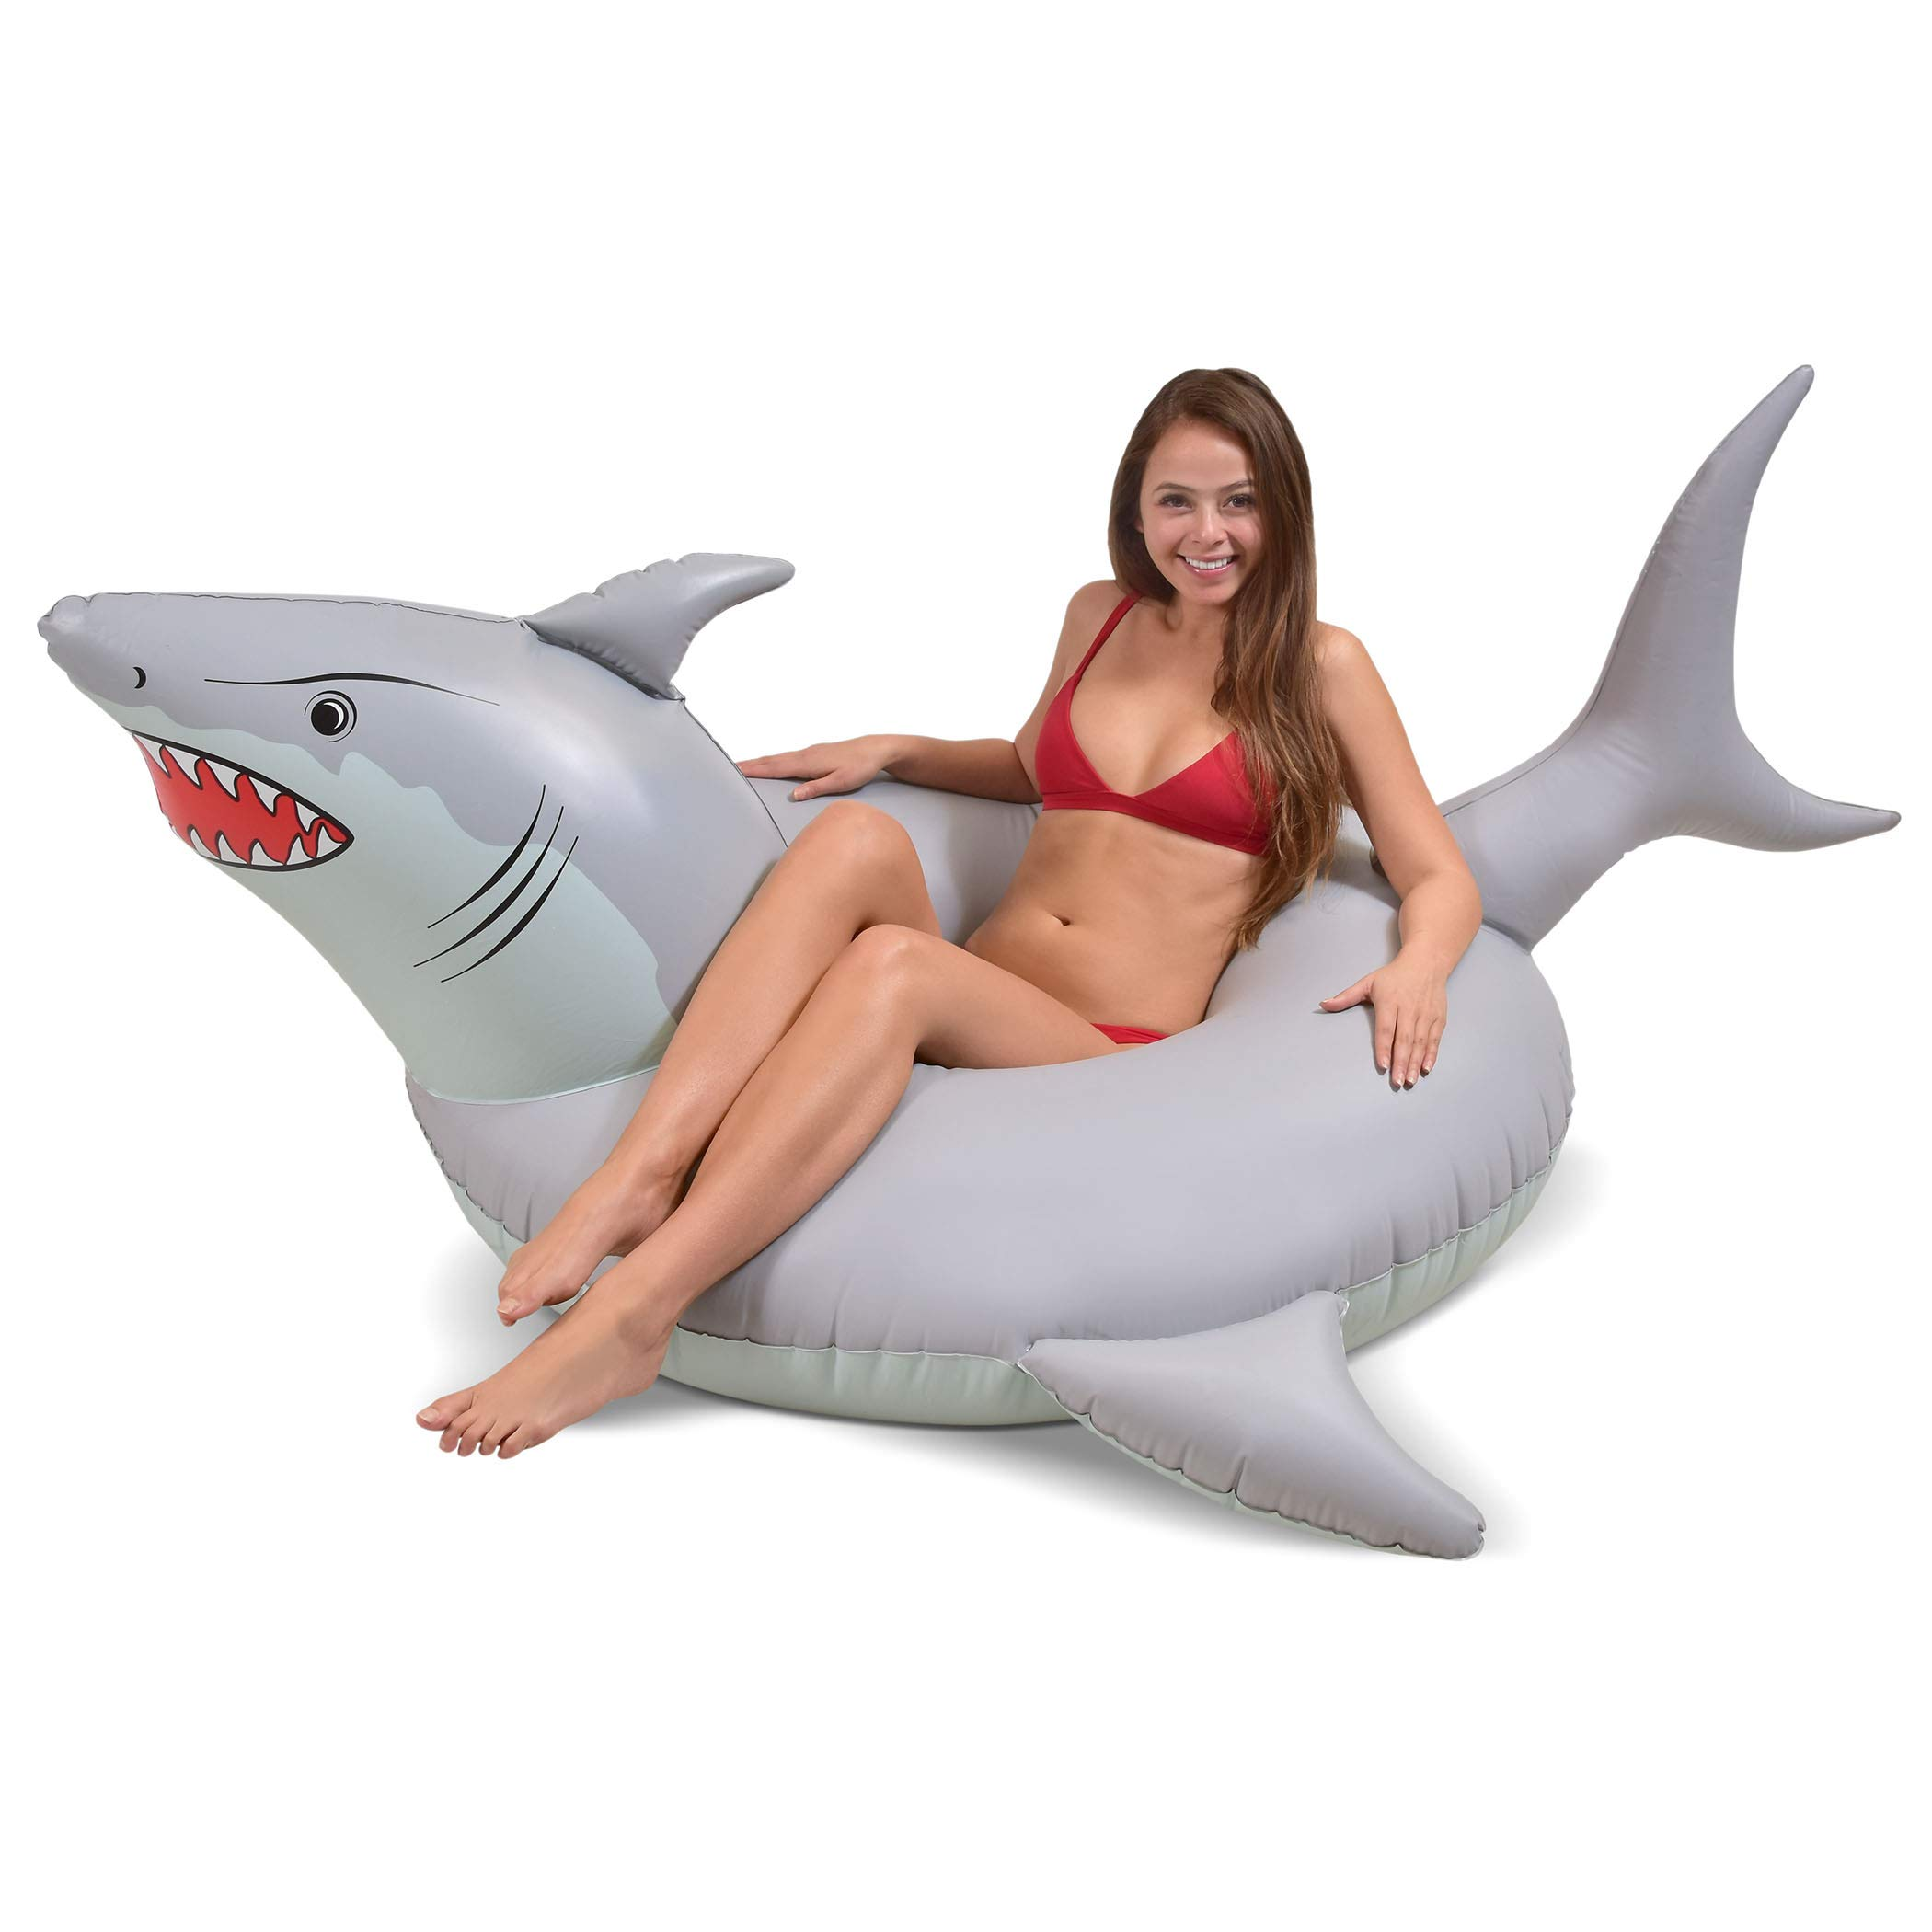 GoFloats 'Great White Bite' Shark Party Tube Inflatable Raft   Fun Pool Float for Adults and Kids by GoFloats